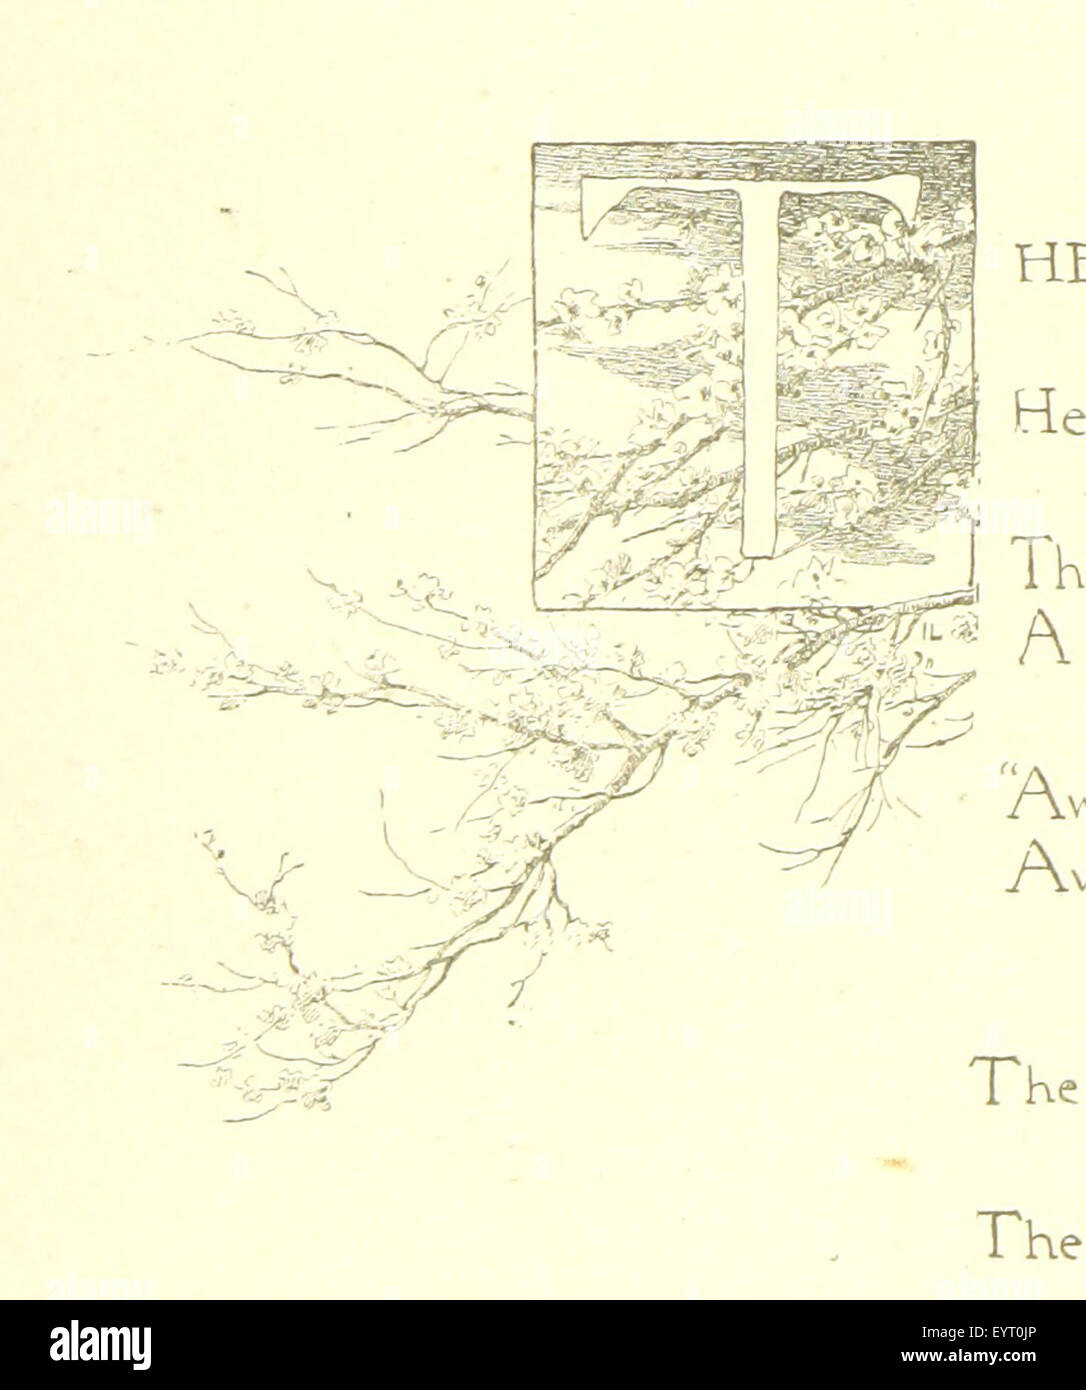 The Beautiful World and other poems, by Helen J. Wood, Helen M. Waithman, and Ethel Dawson. Illustrated Image taken - Stock Image